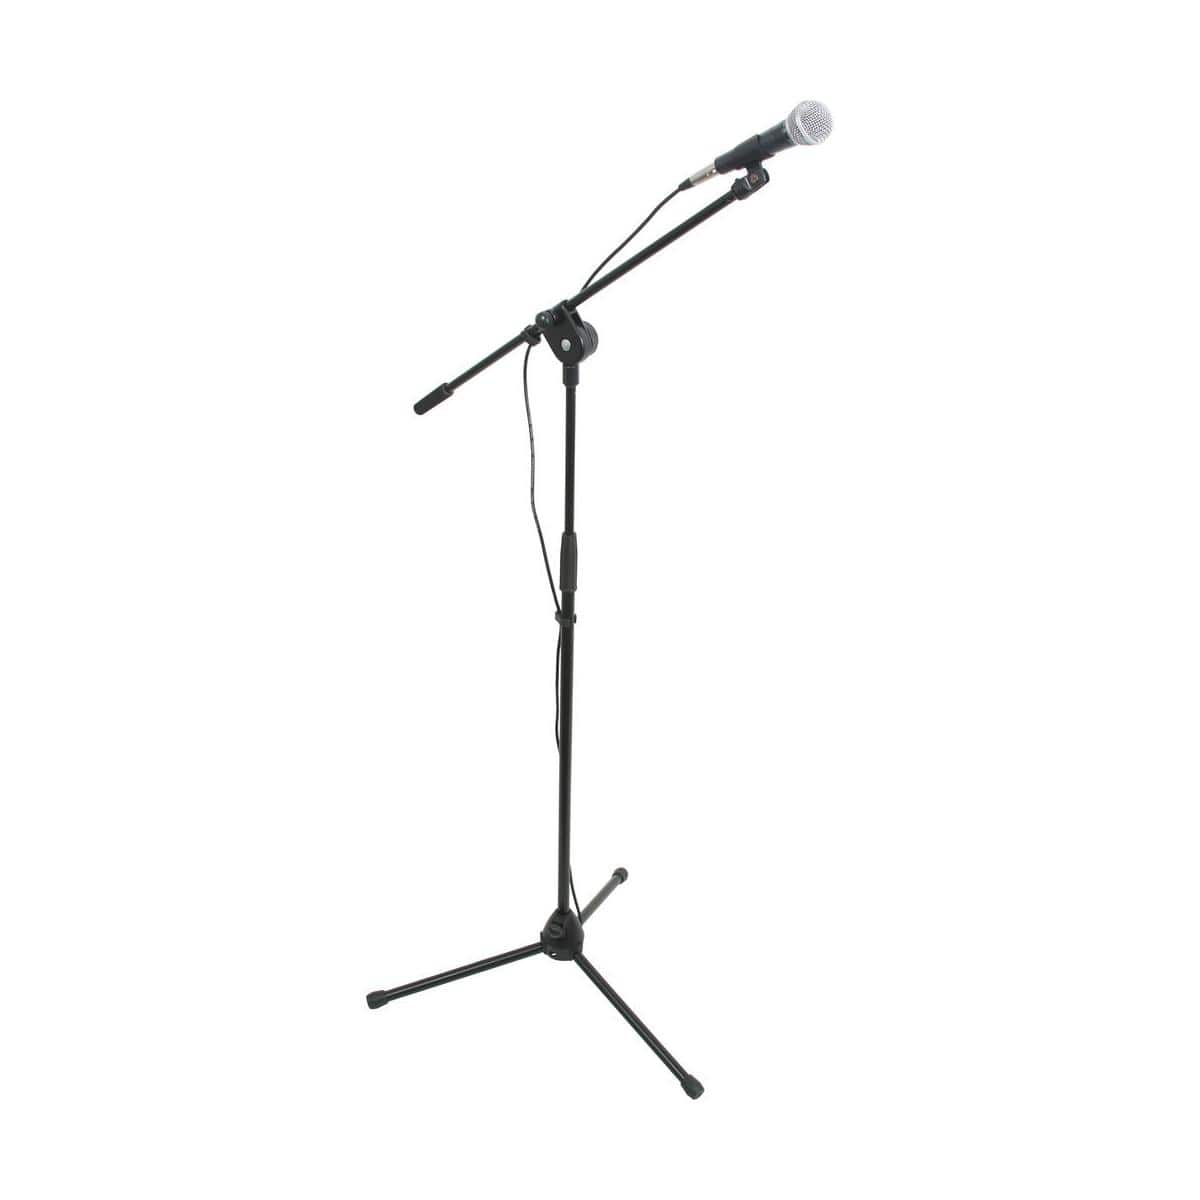 Galaxy Audio RT-66SXD Unidirectional Cardioid Dynamic Microphone and Stand Kit $20 + free s/h at Adorama